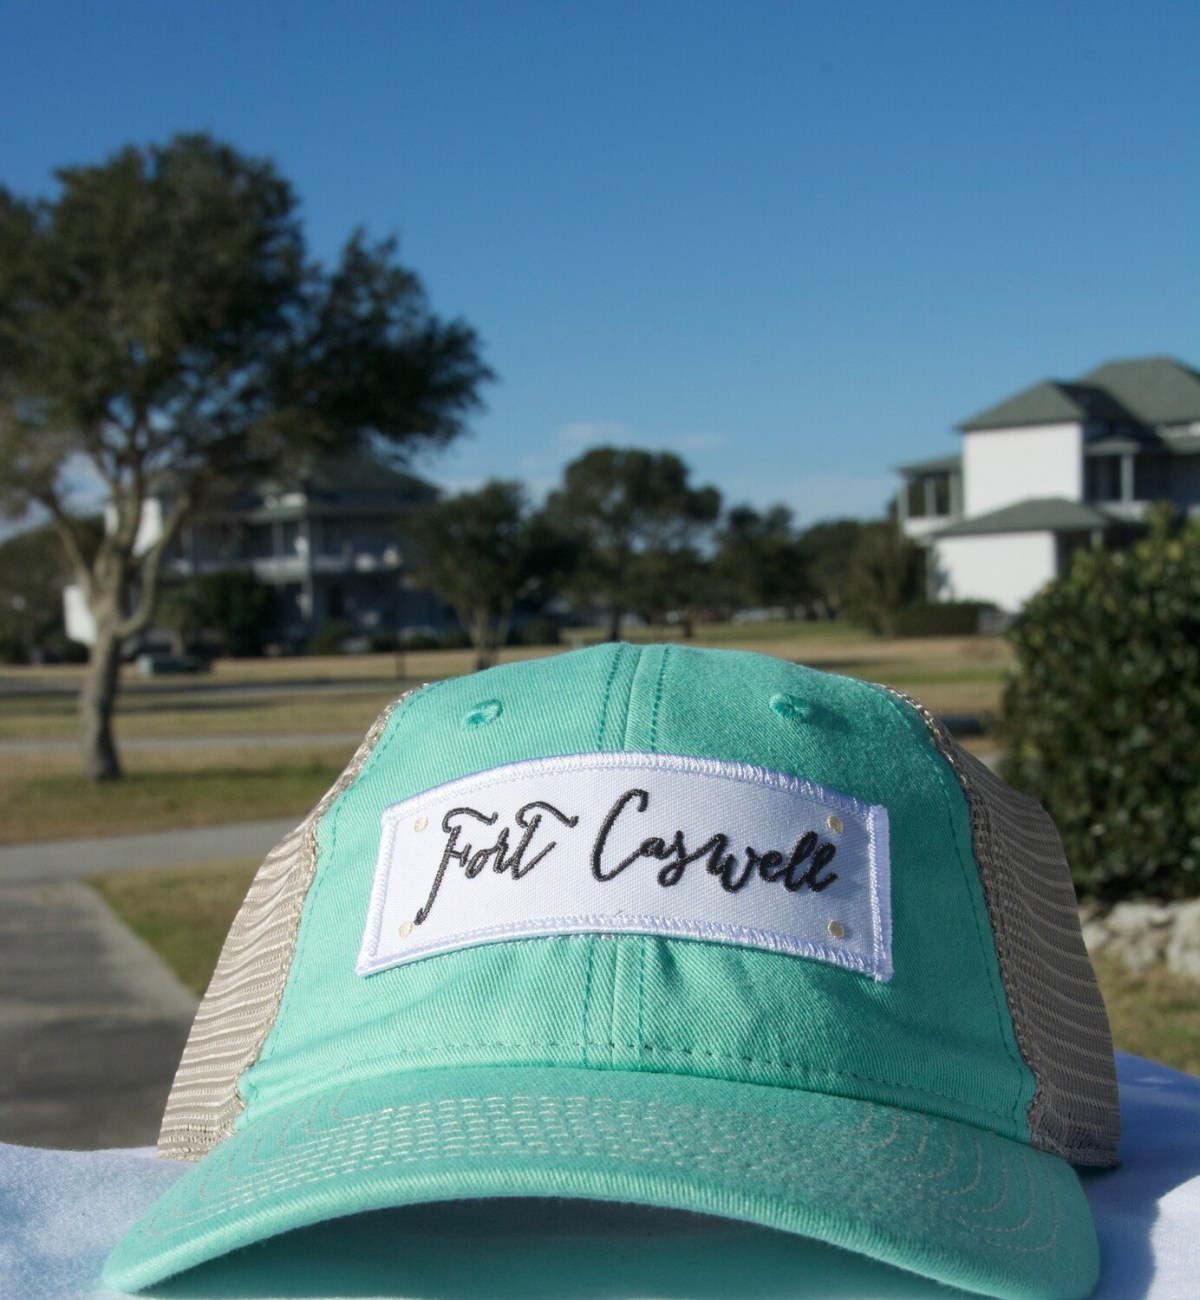 Fort Caswell Mint Green Hat